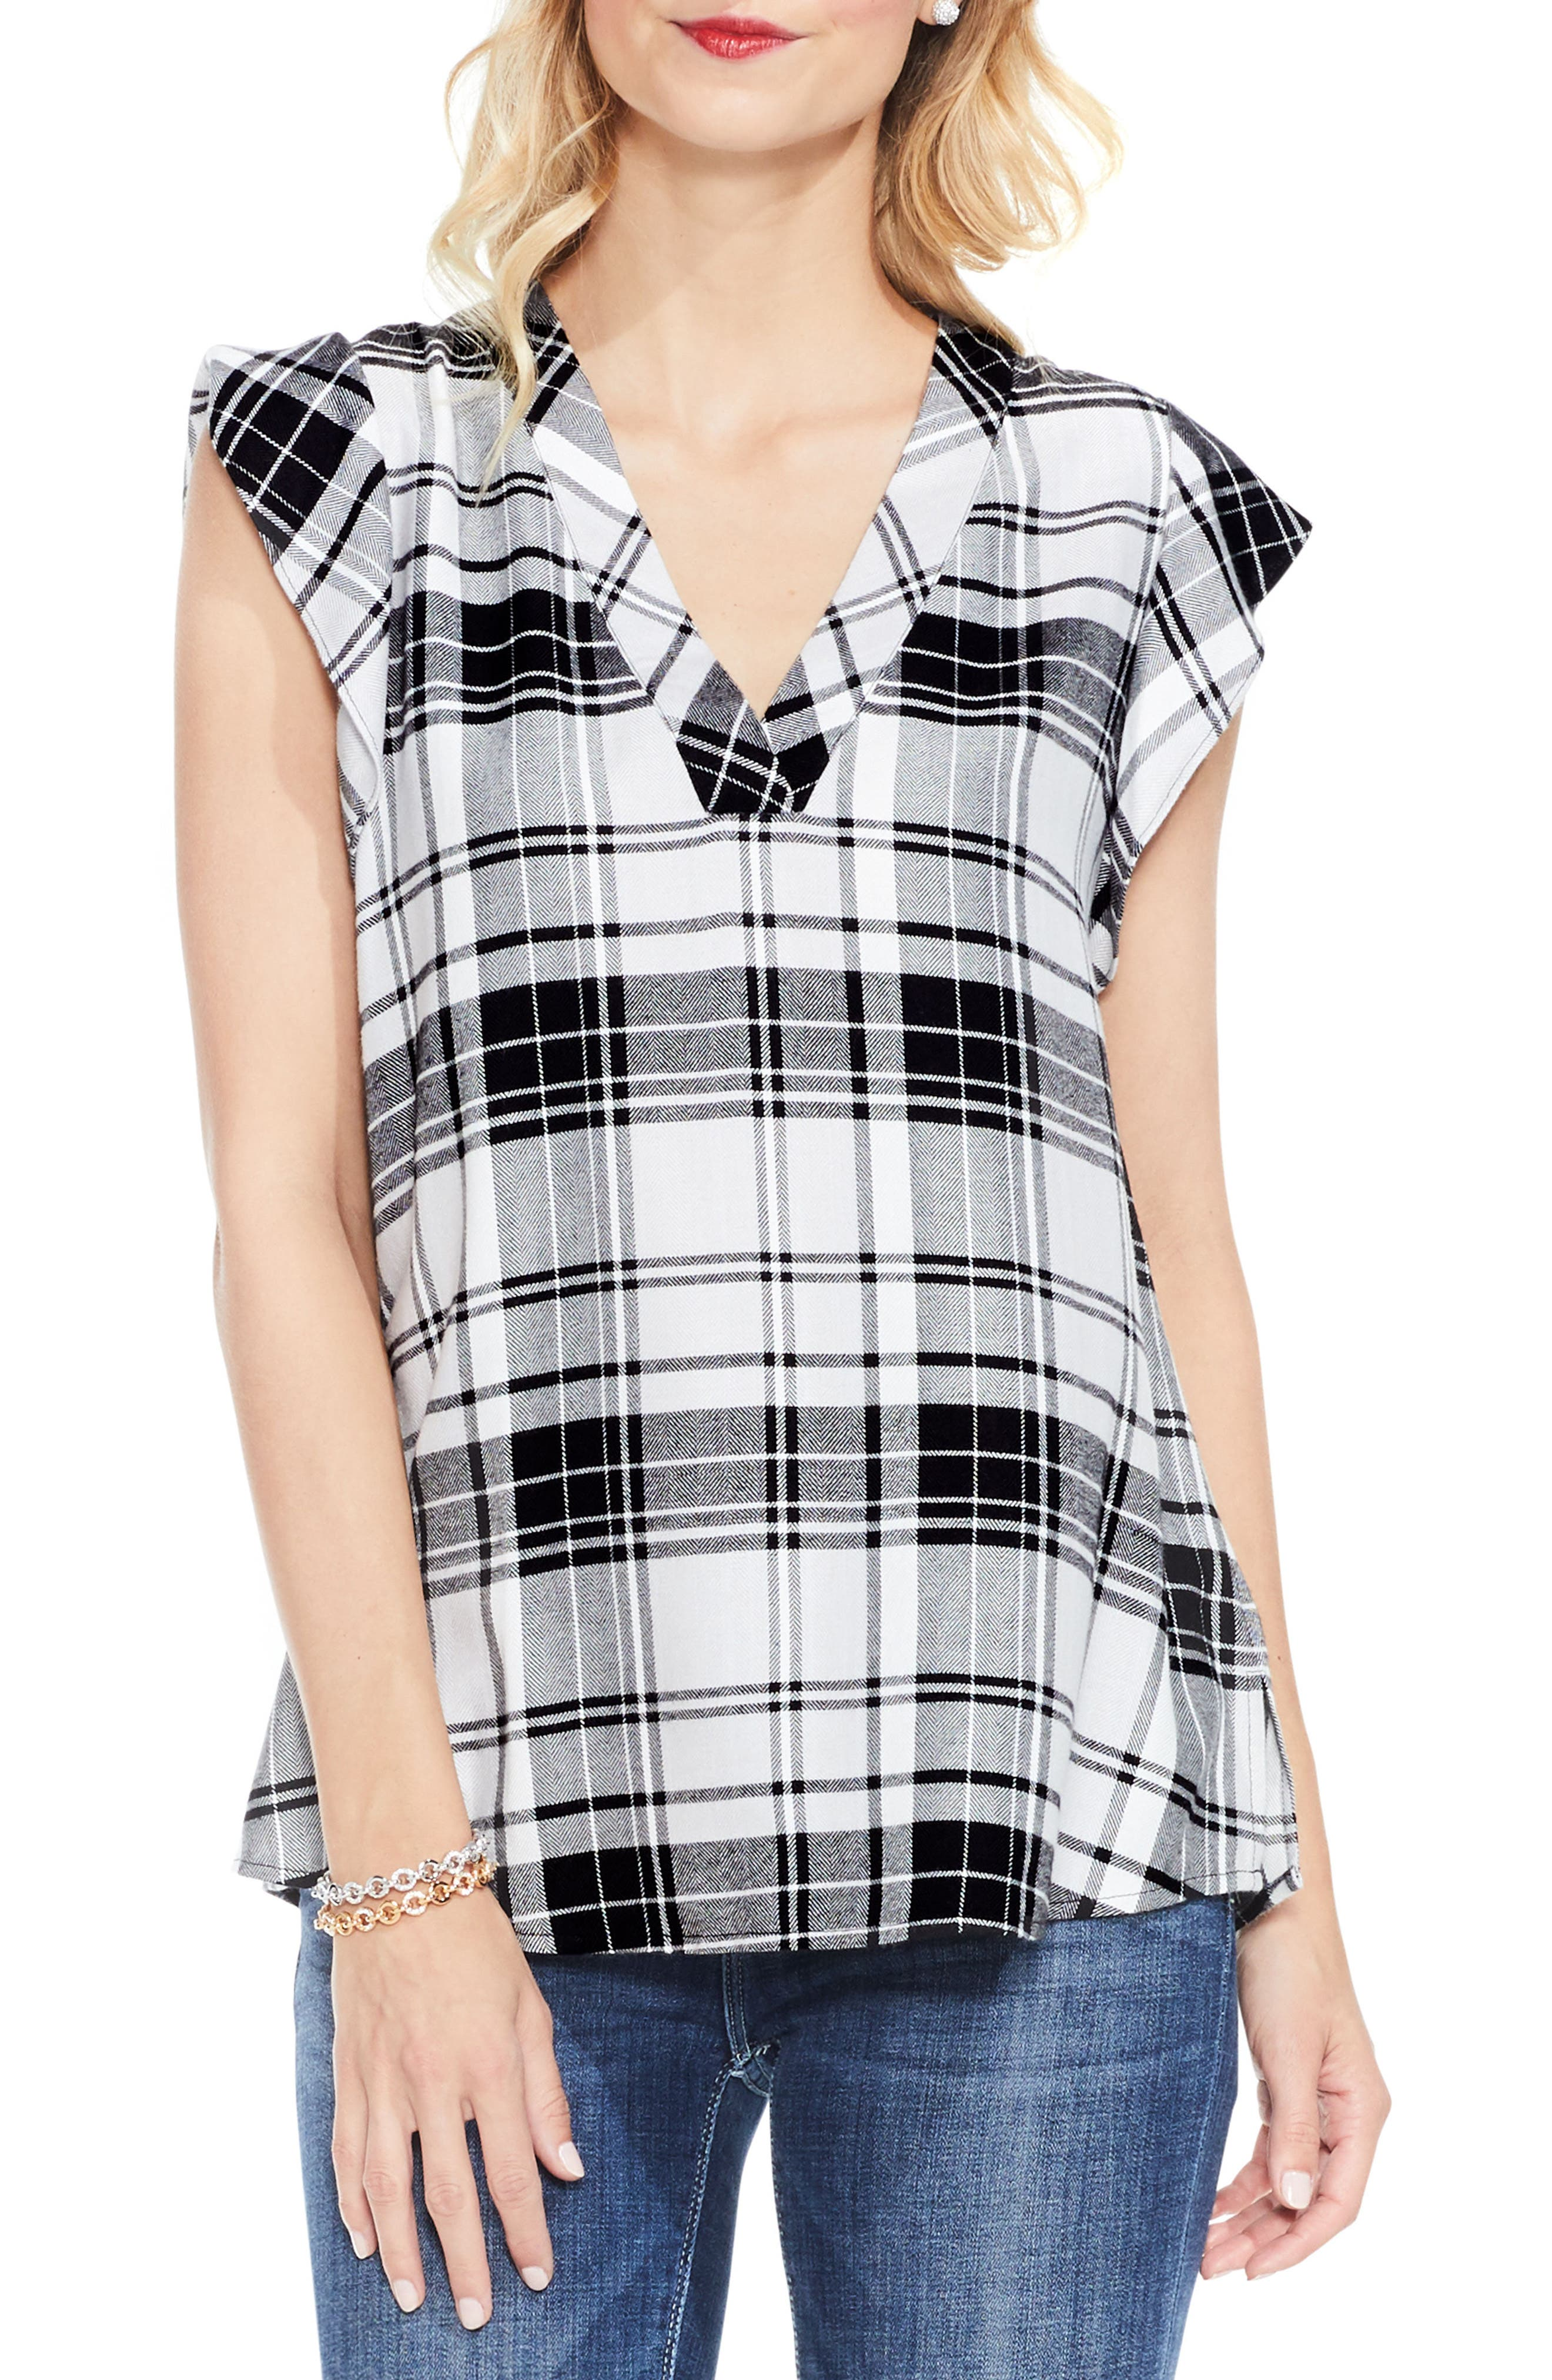 Alternate Image 1 Selected - Two by Vince Camuto Bedford Plaid Top